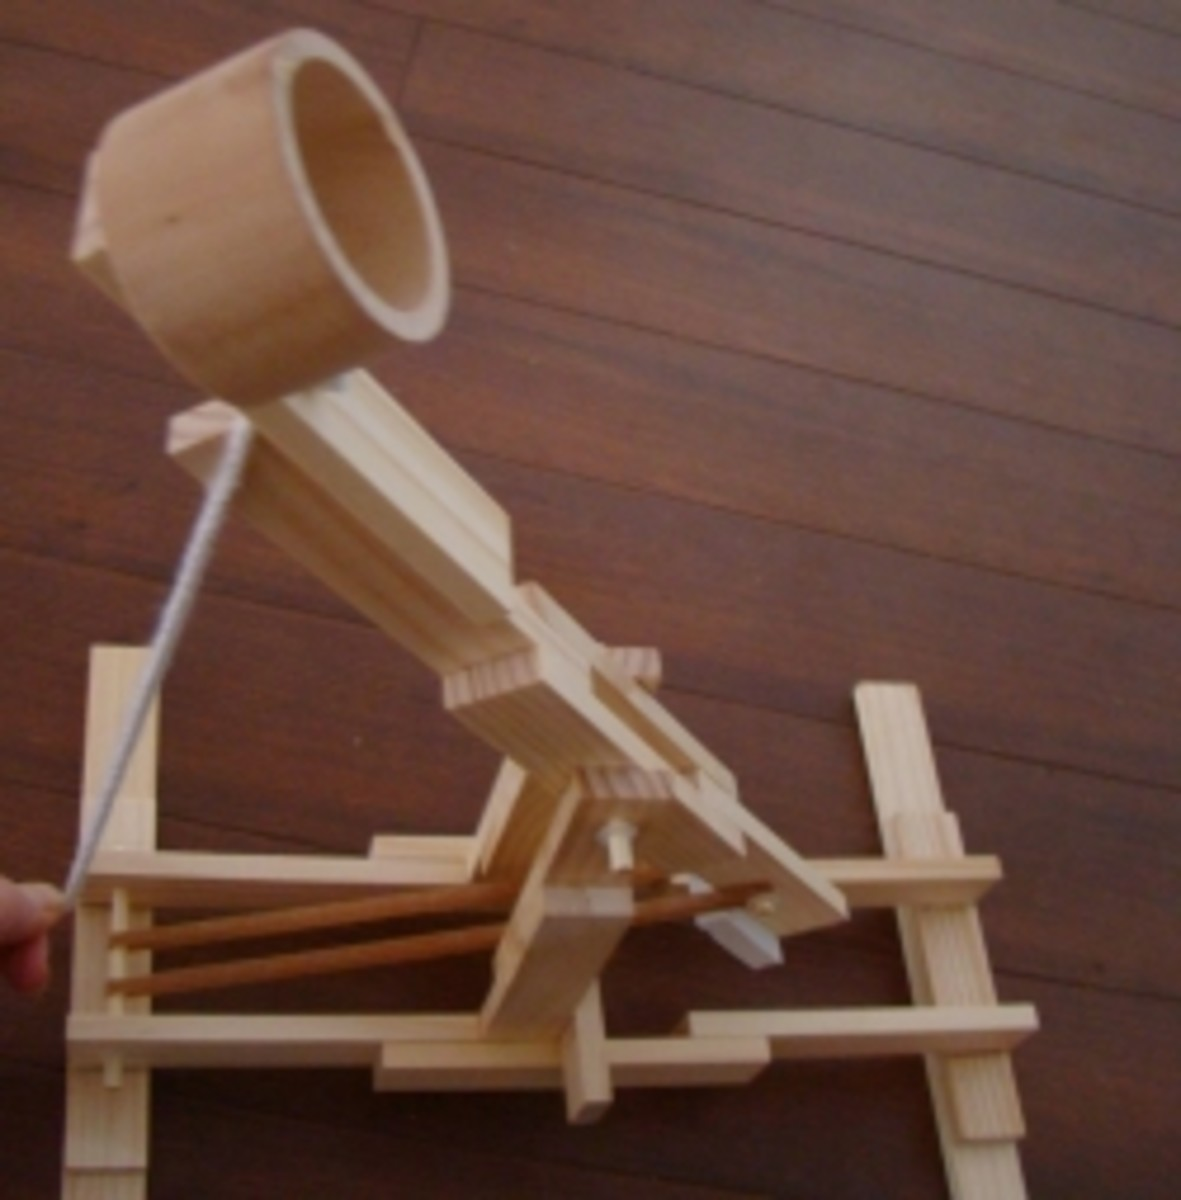 how to build a homemade catapult